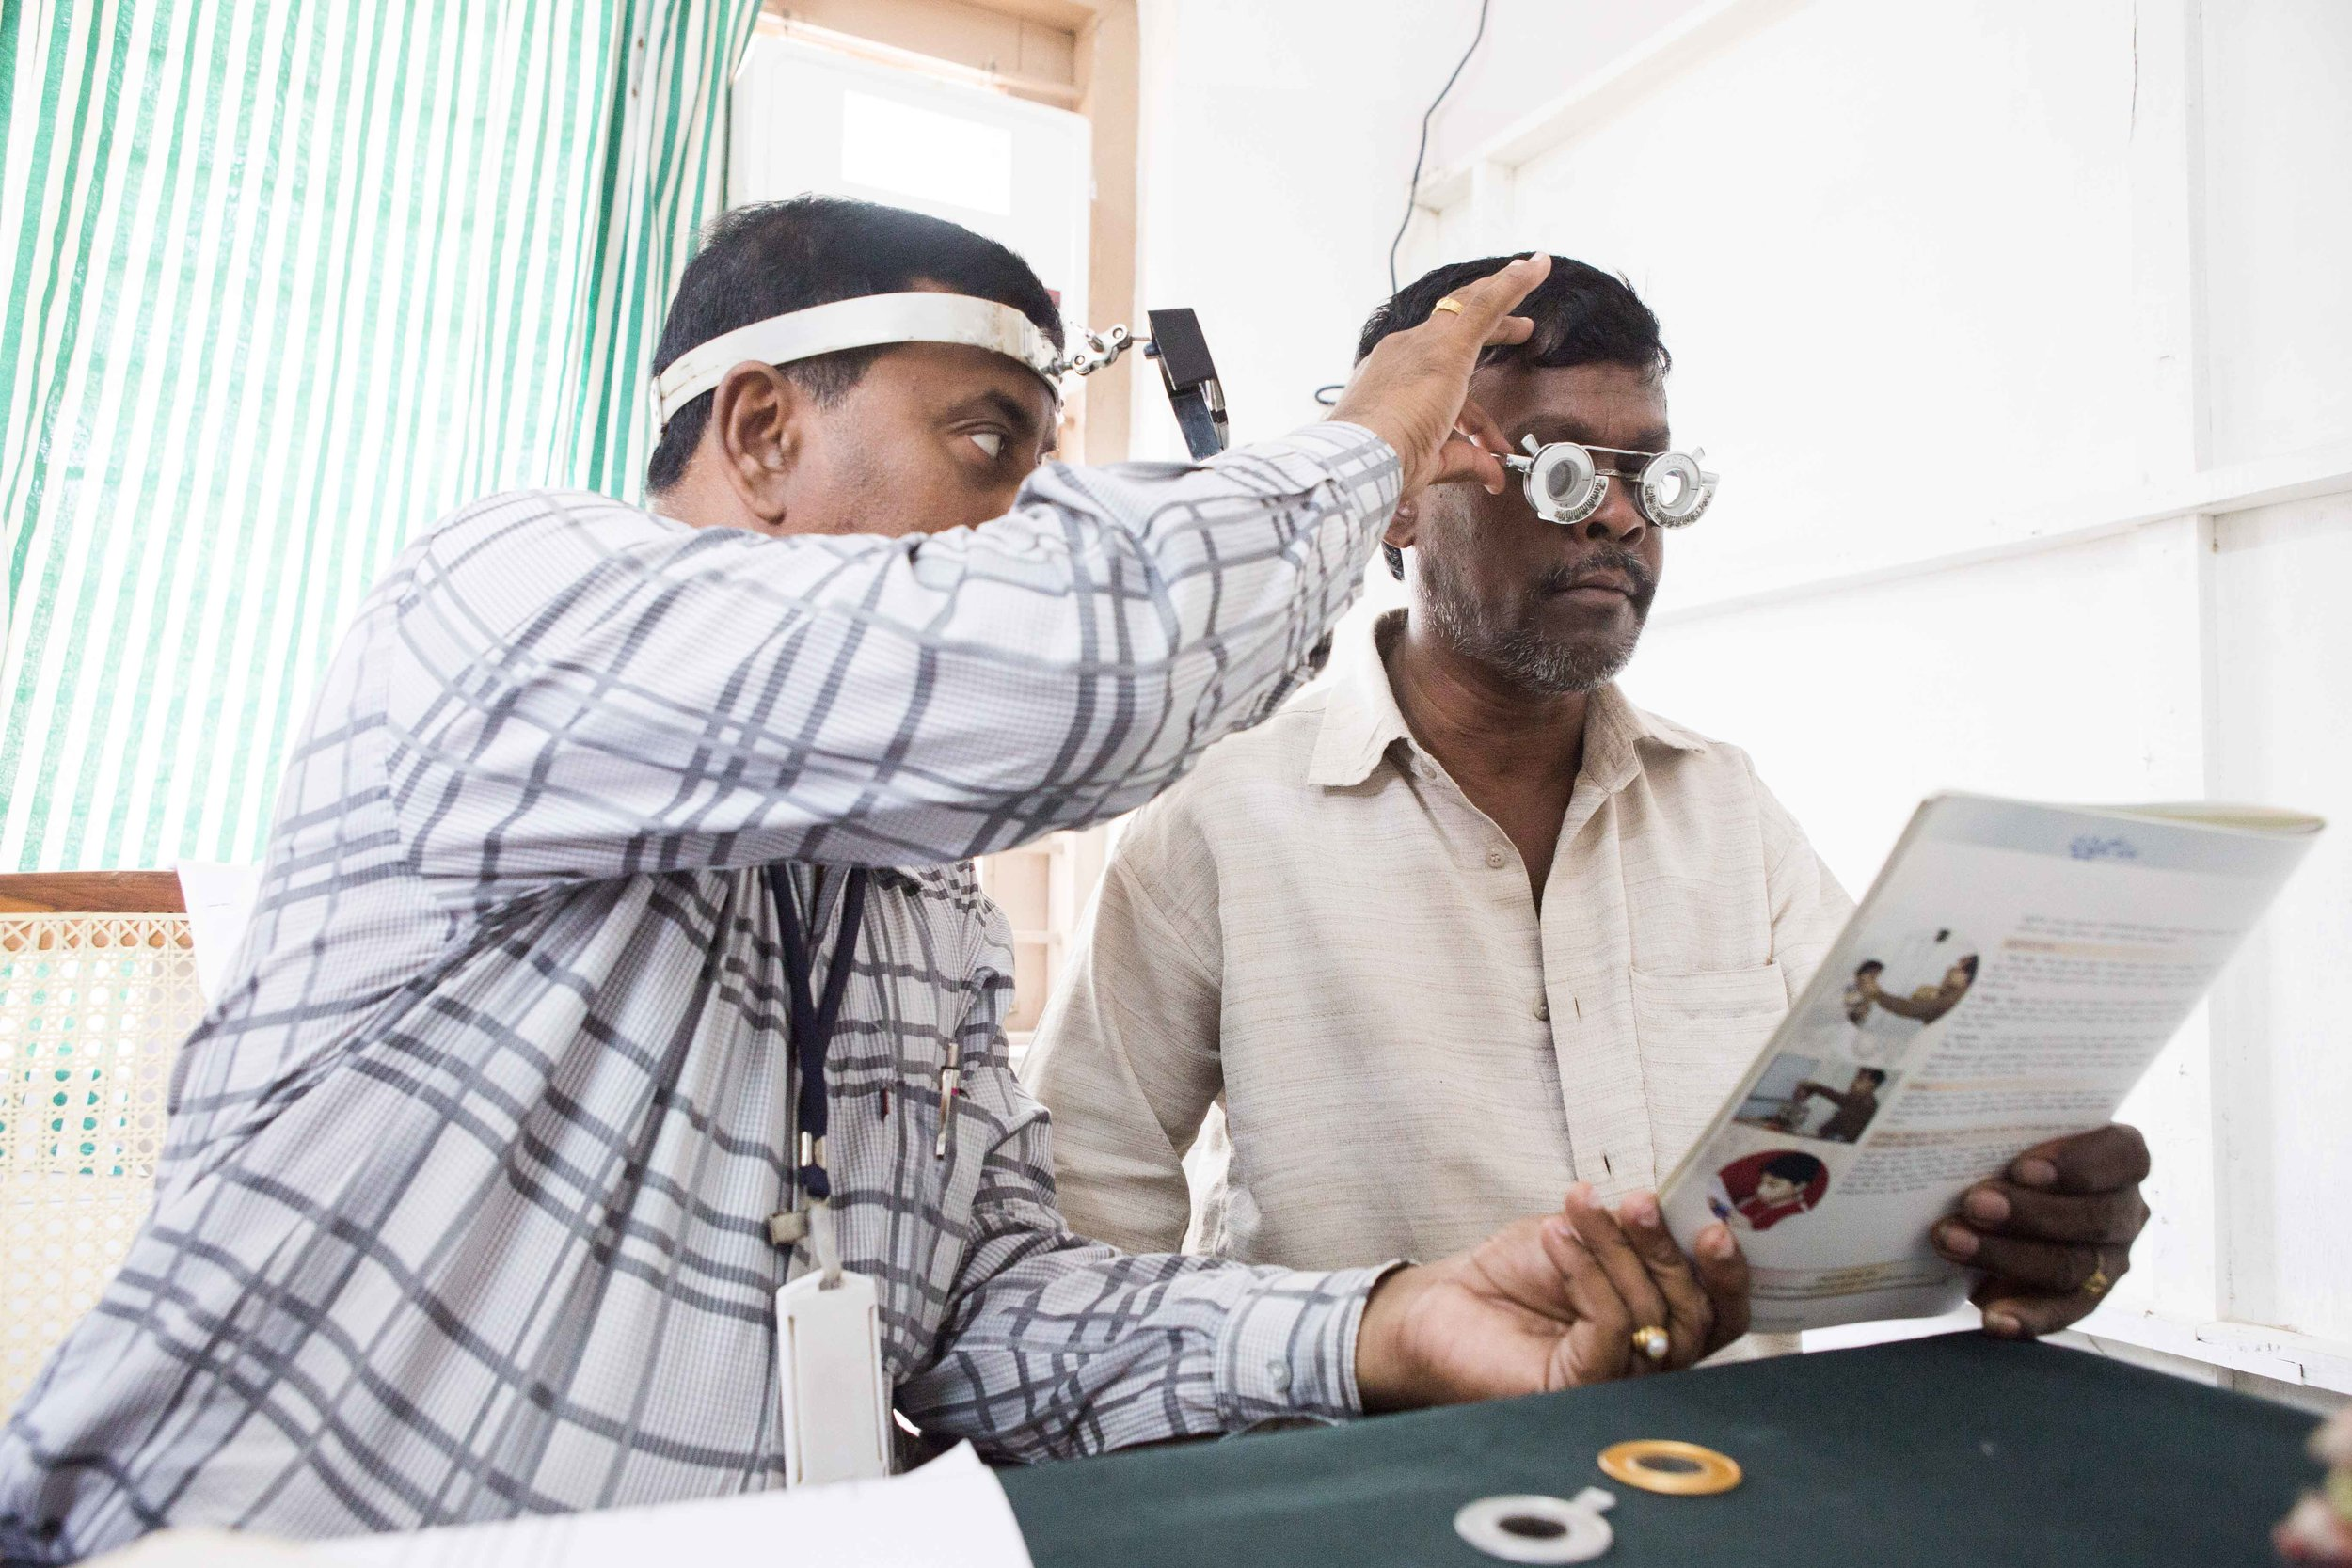 Optometry test in progress to detect extent of vision loss, Primary healthcare Centre Vizianagaram, Andhra Pradesh